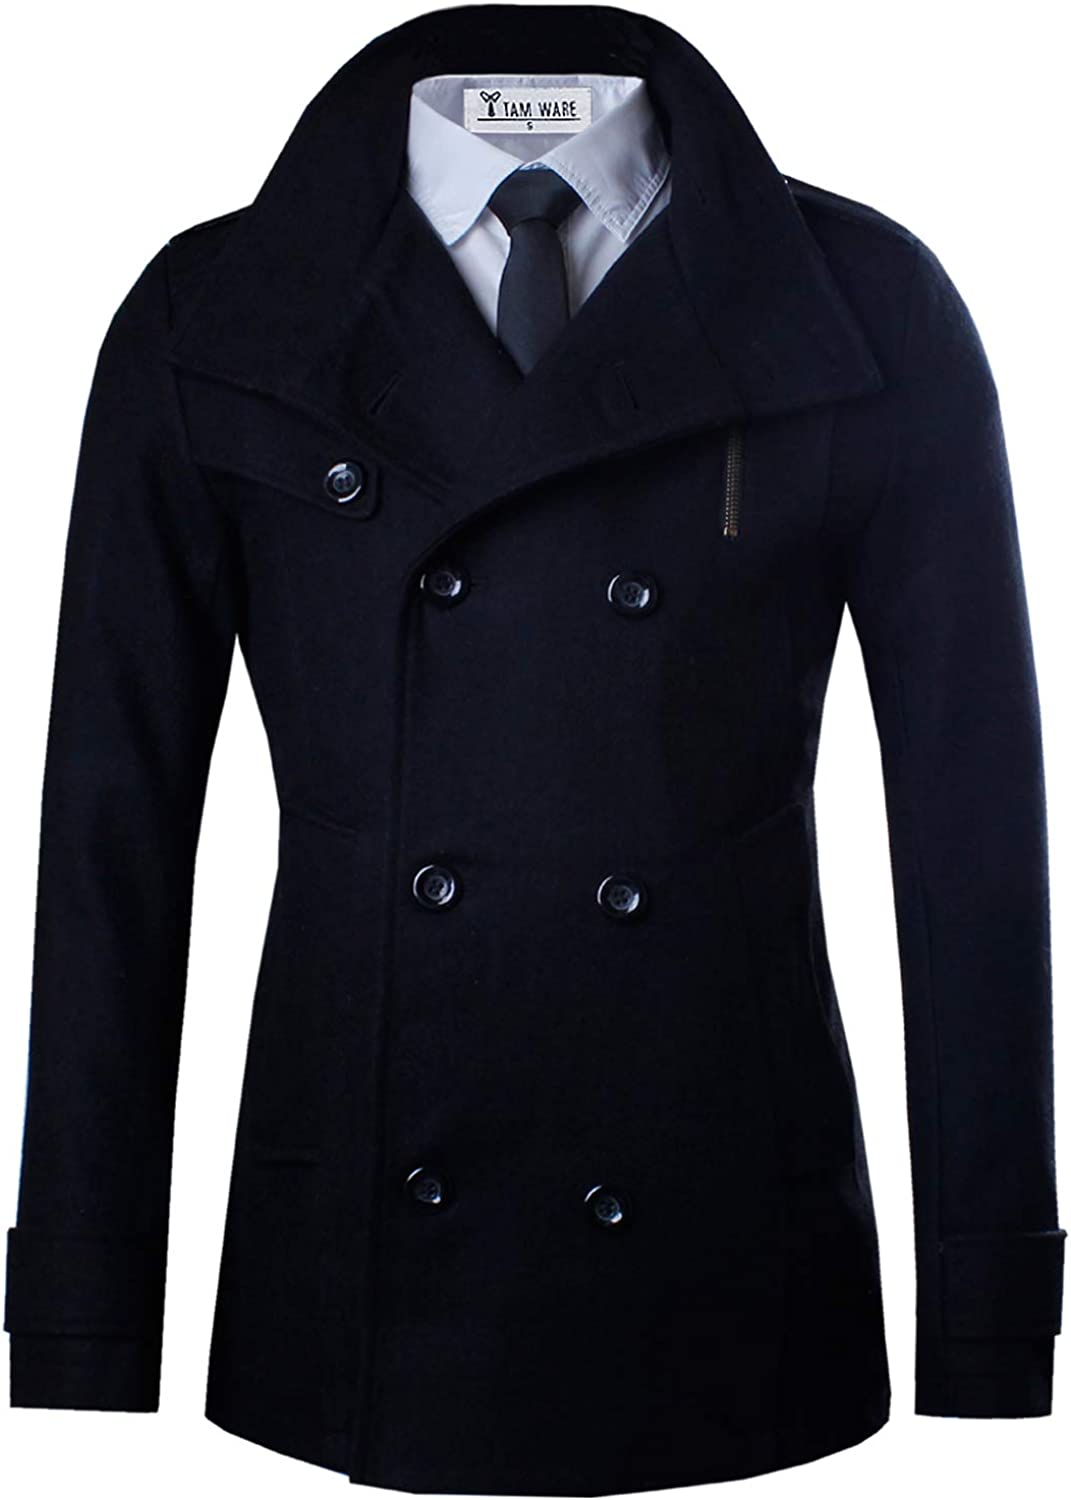 TAM WARE Mens Classic Wool Double Breasted Pea Coat